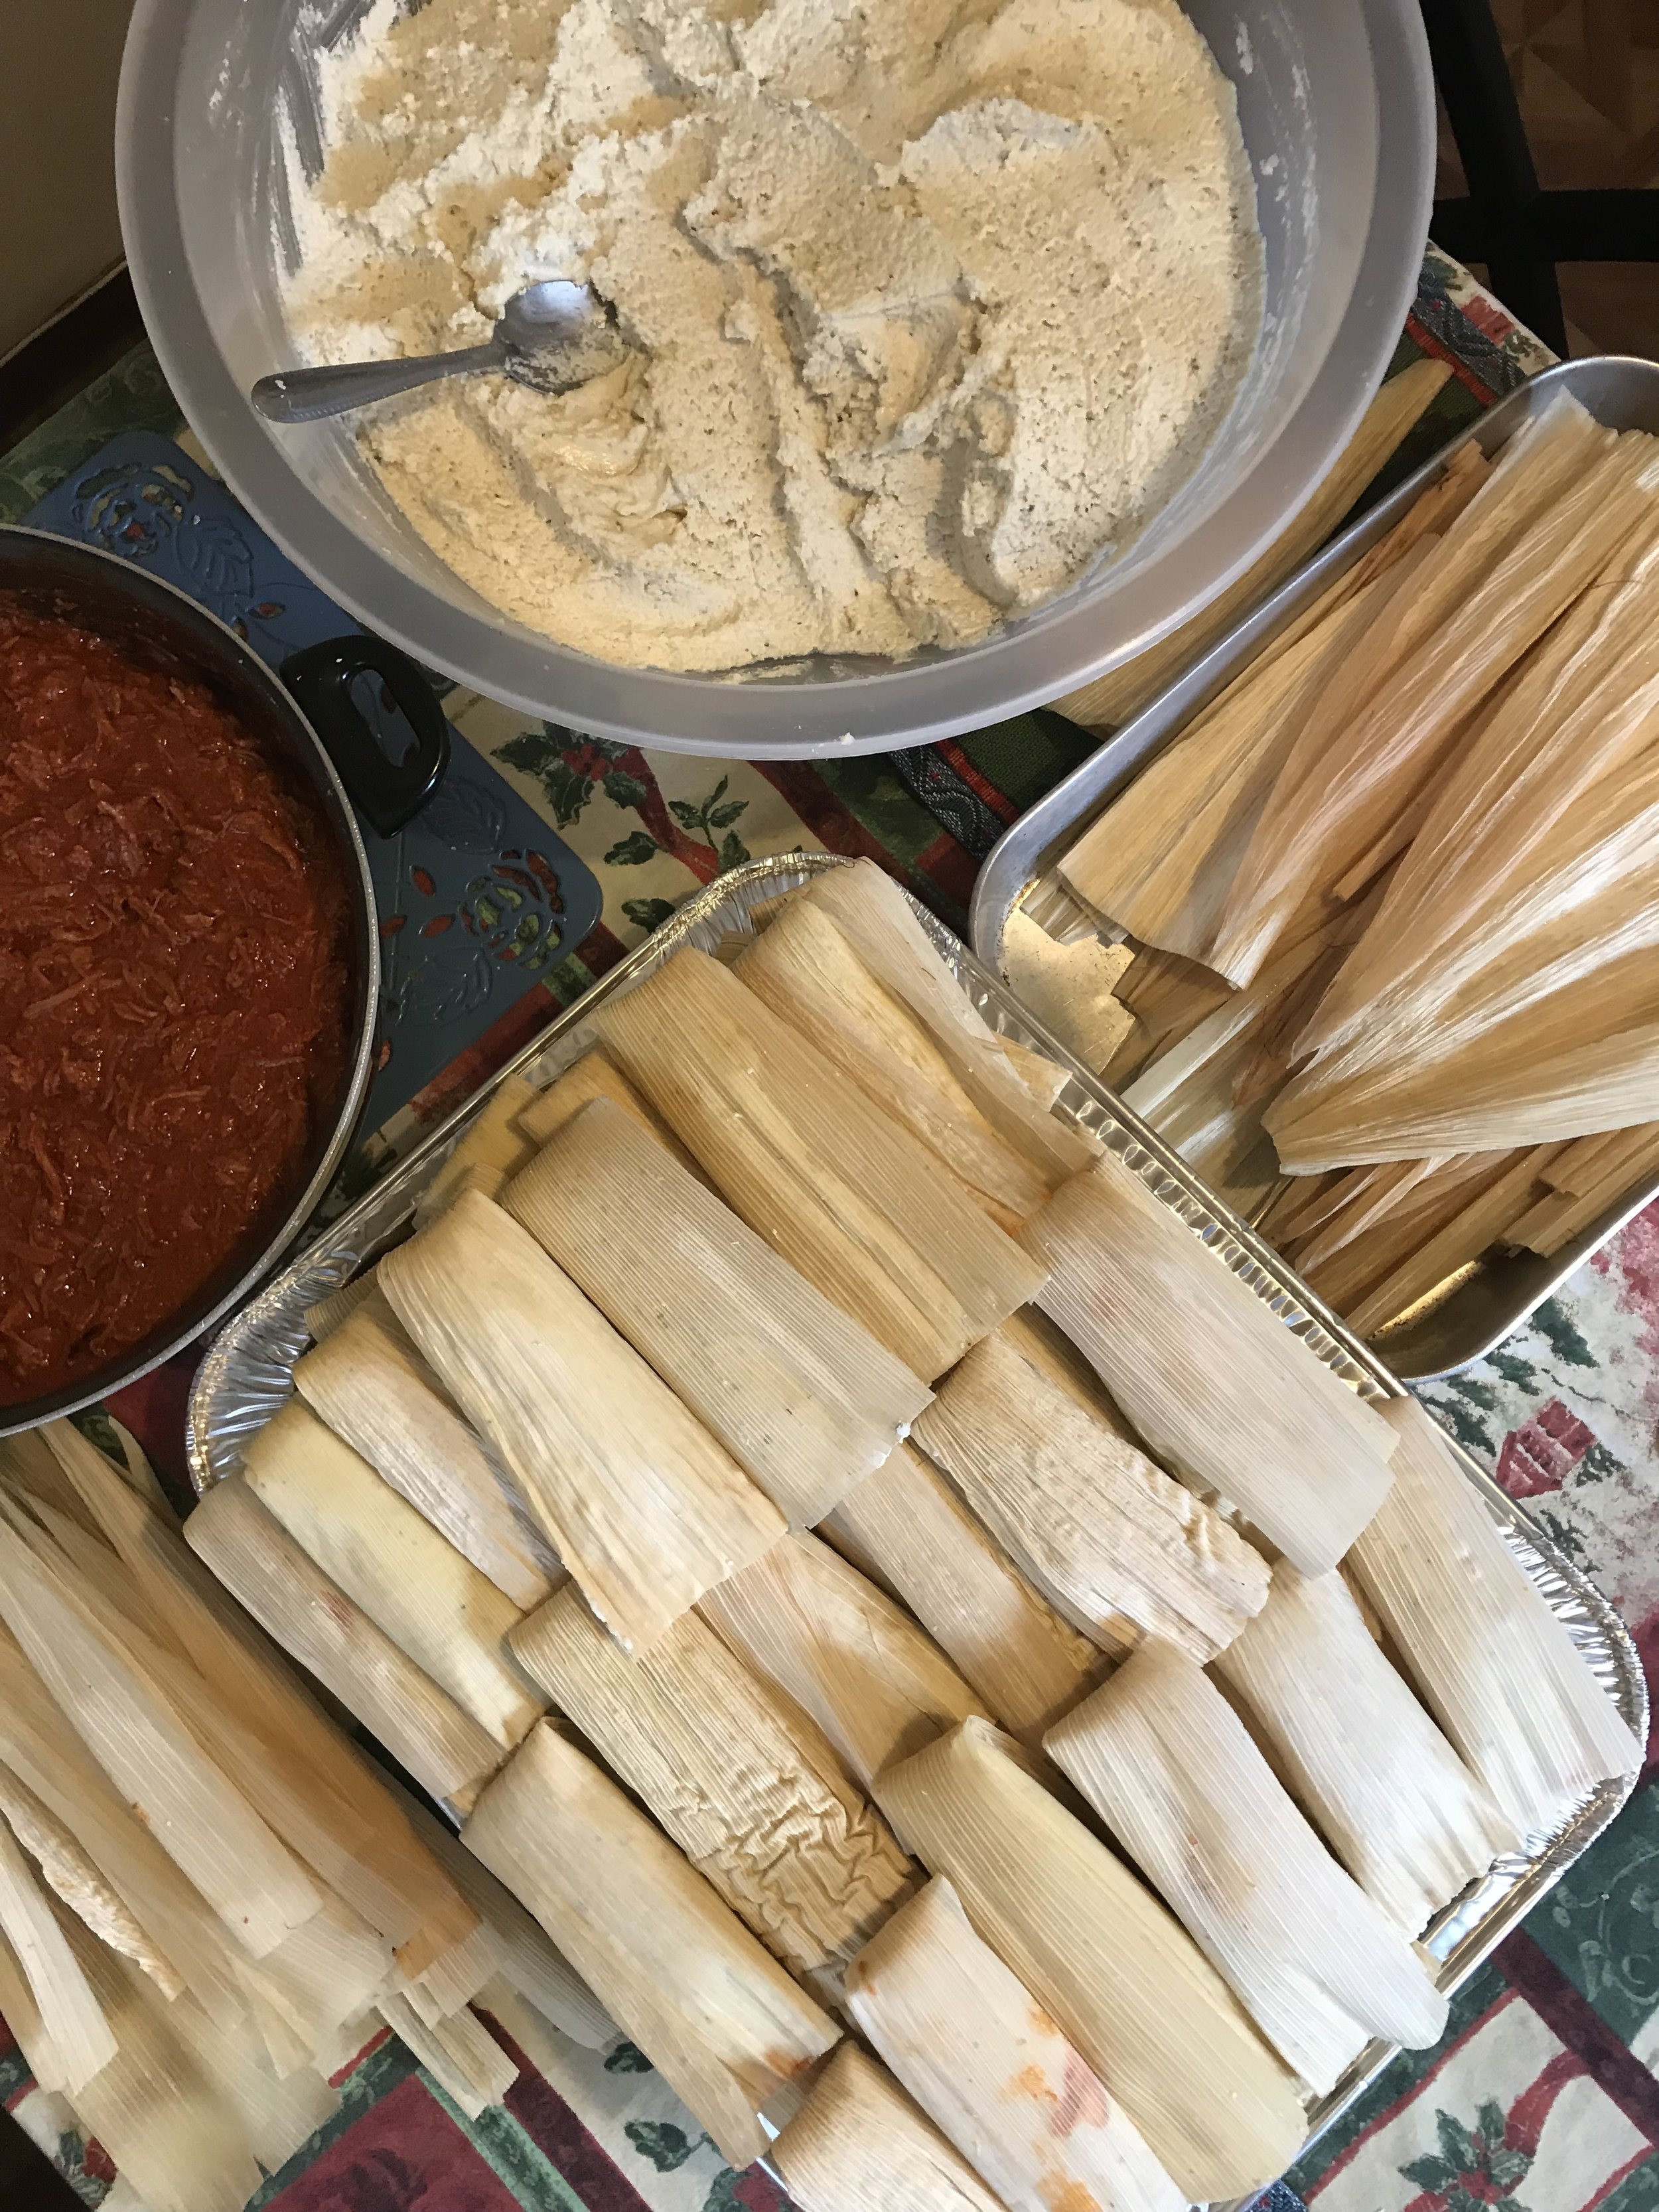 Generous Knowledge and the Tamale Process - Generously shared knowledge from my mom-in-law